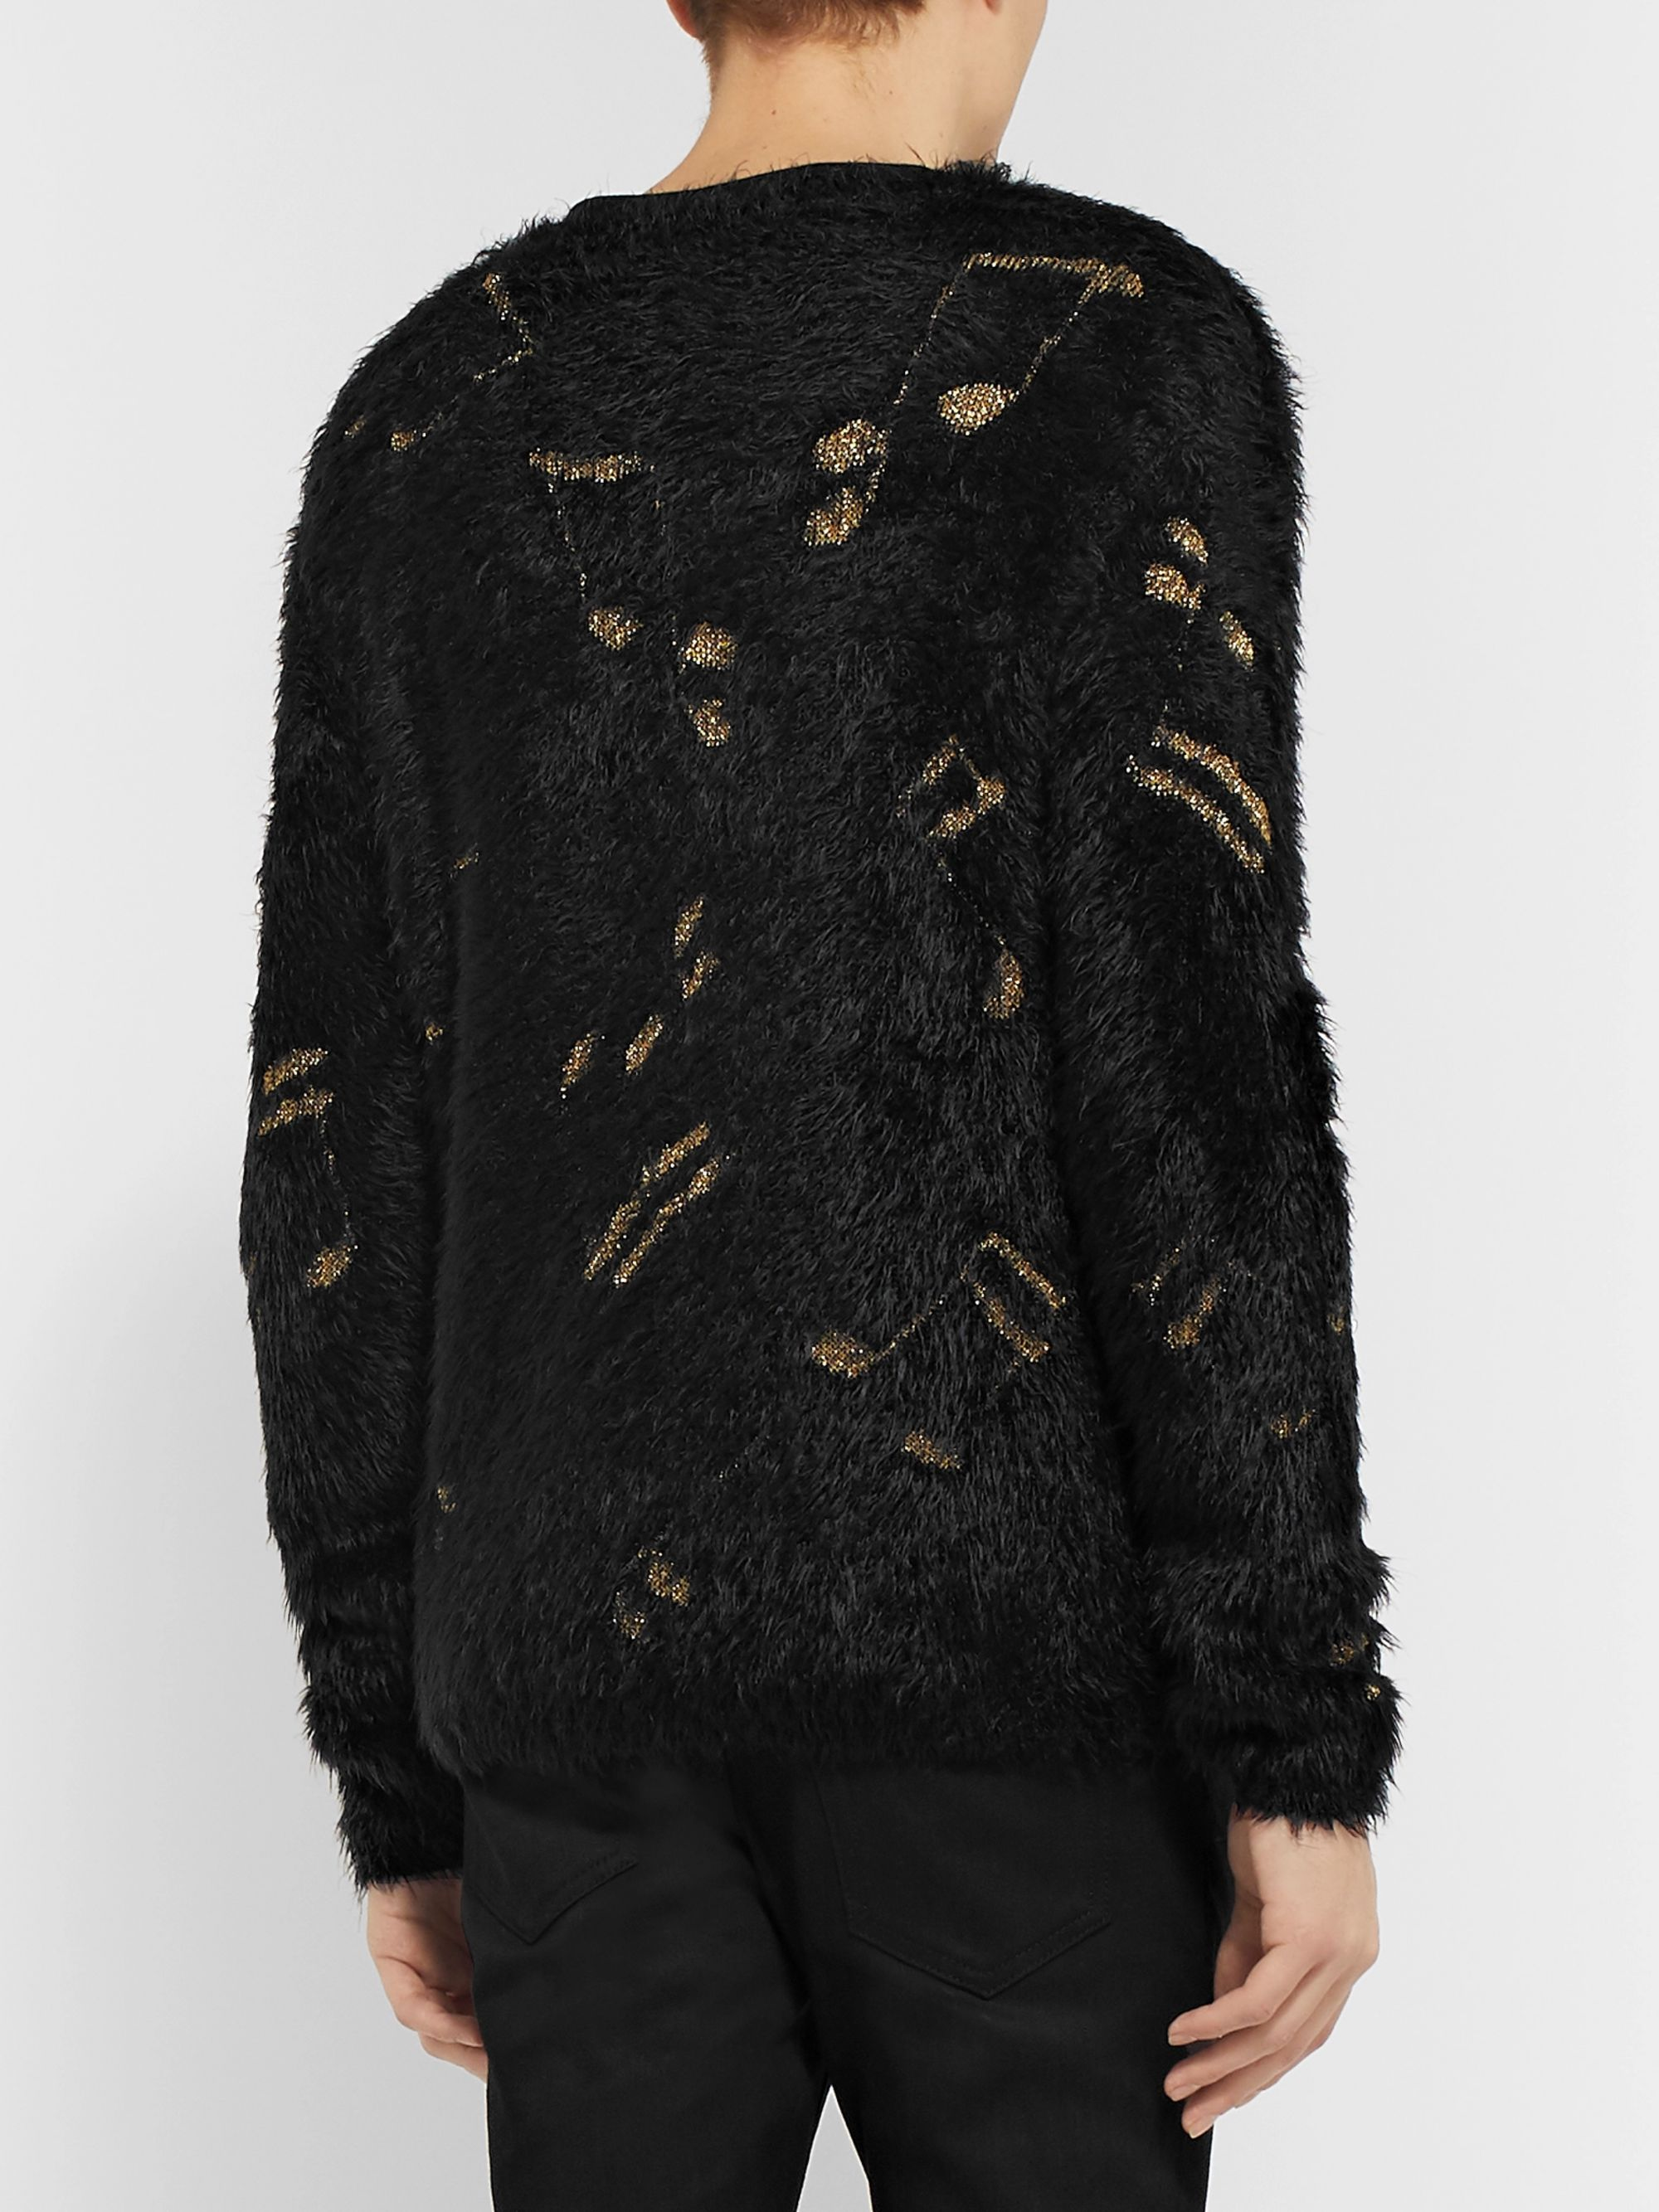 SAINT LAURENT Jacquard-Knit Sweater